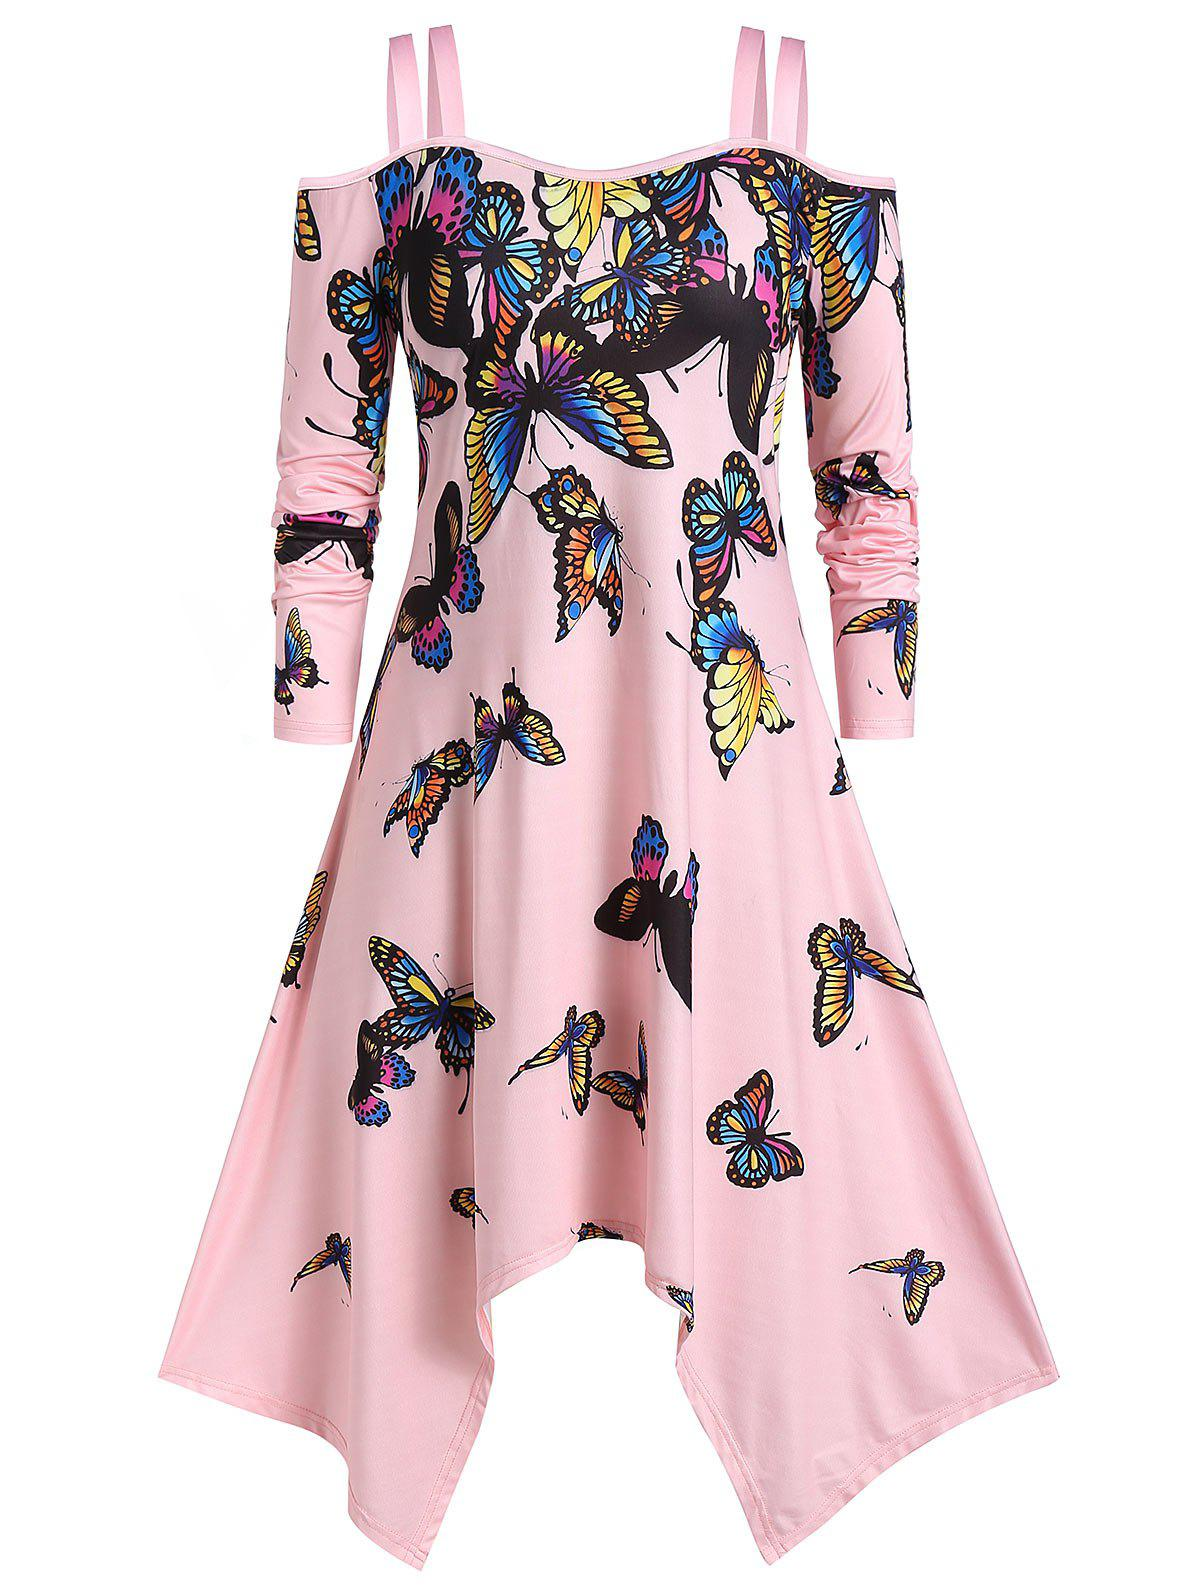 Plus Size Butterfly Print Cold Shoulder Hanky Hem Dress - LIGHT PINK L